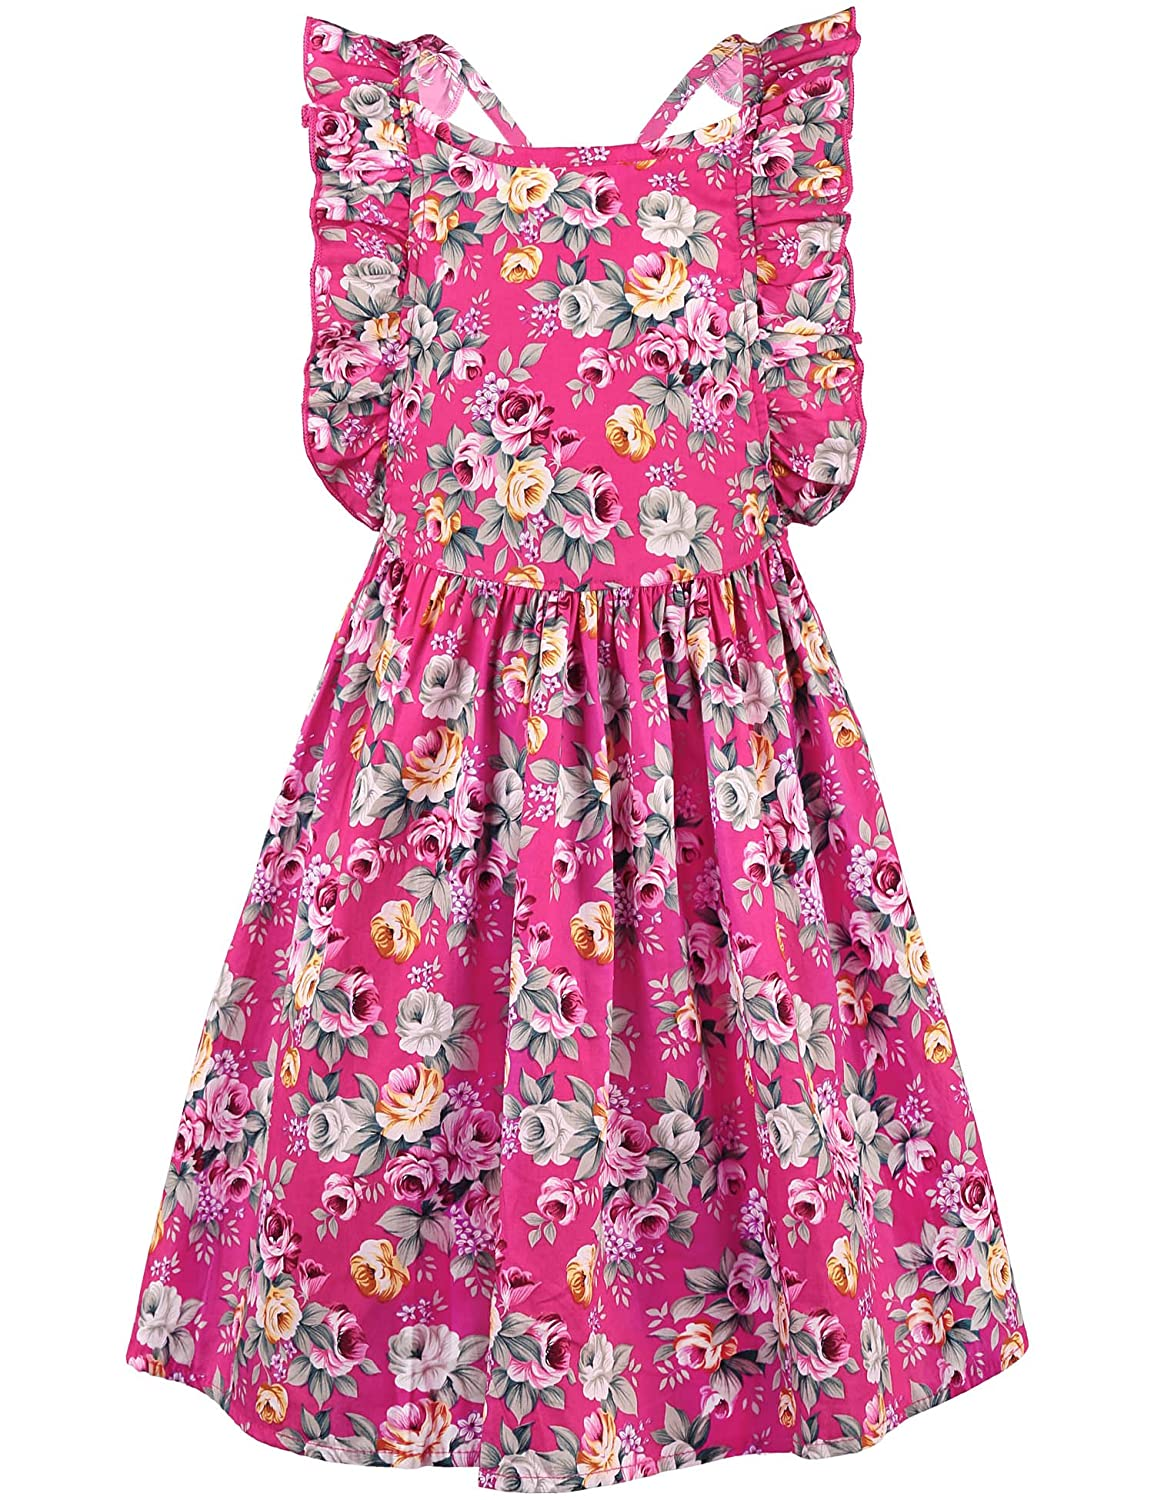 ephex Girls Halter Cotton Vintage Print Floral Princess Party Dress 2-9 Years